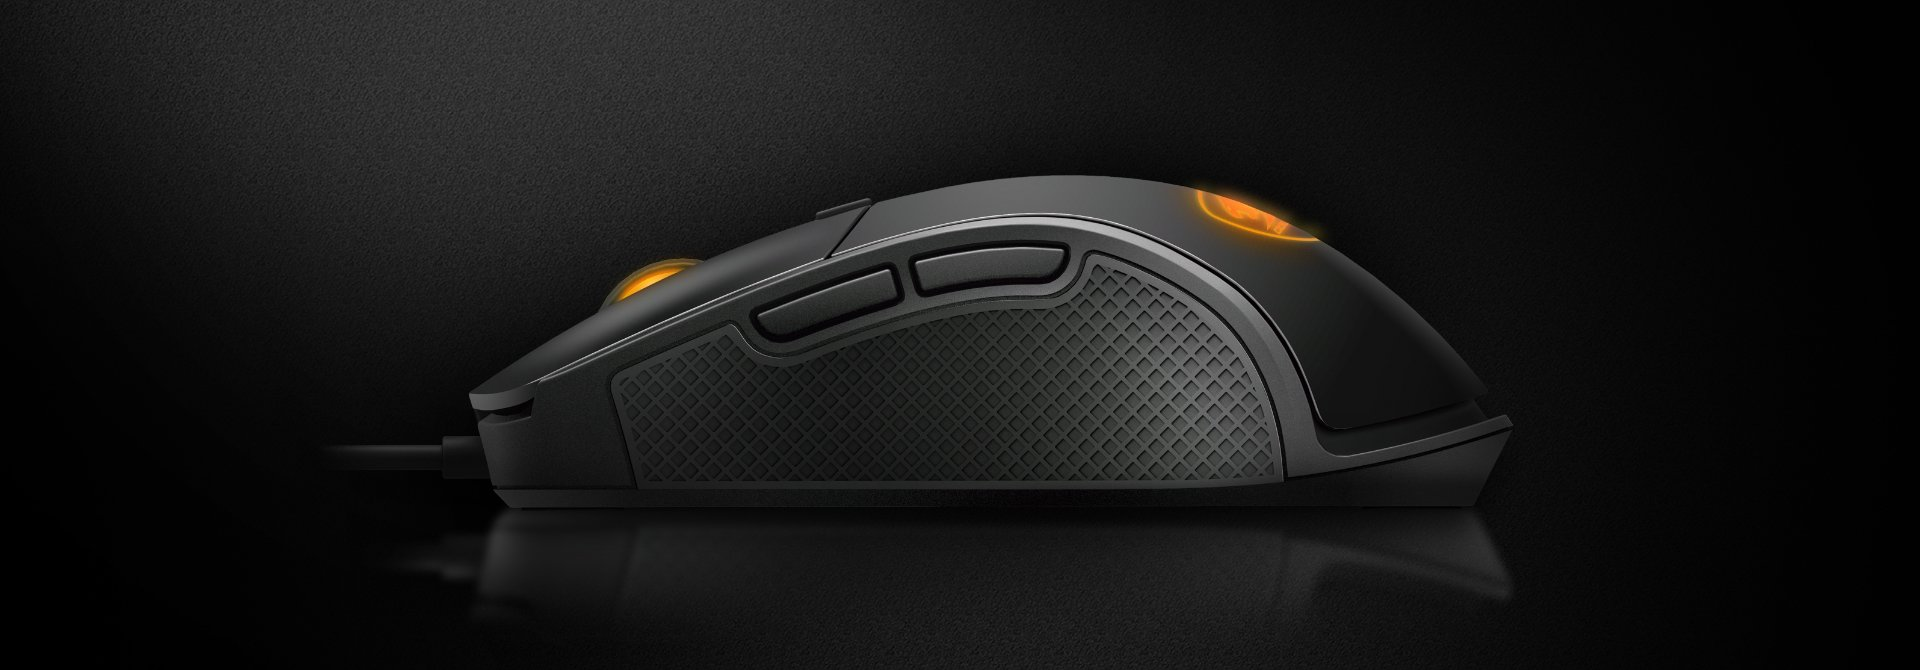 COUGAR SURPASSION - Multi-color Backlight System (2 Zone RGB)